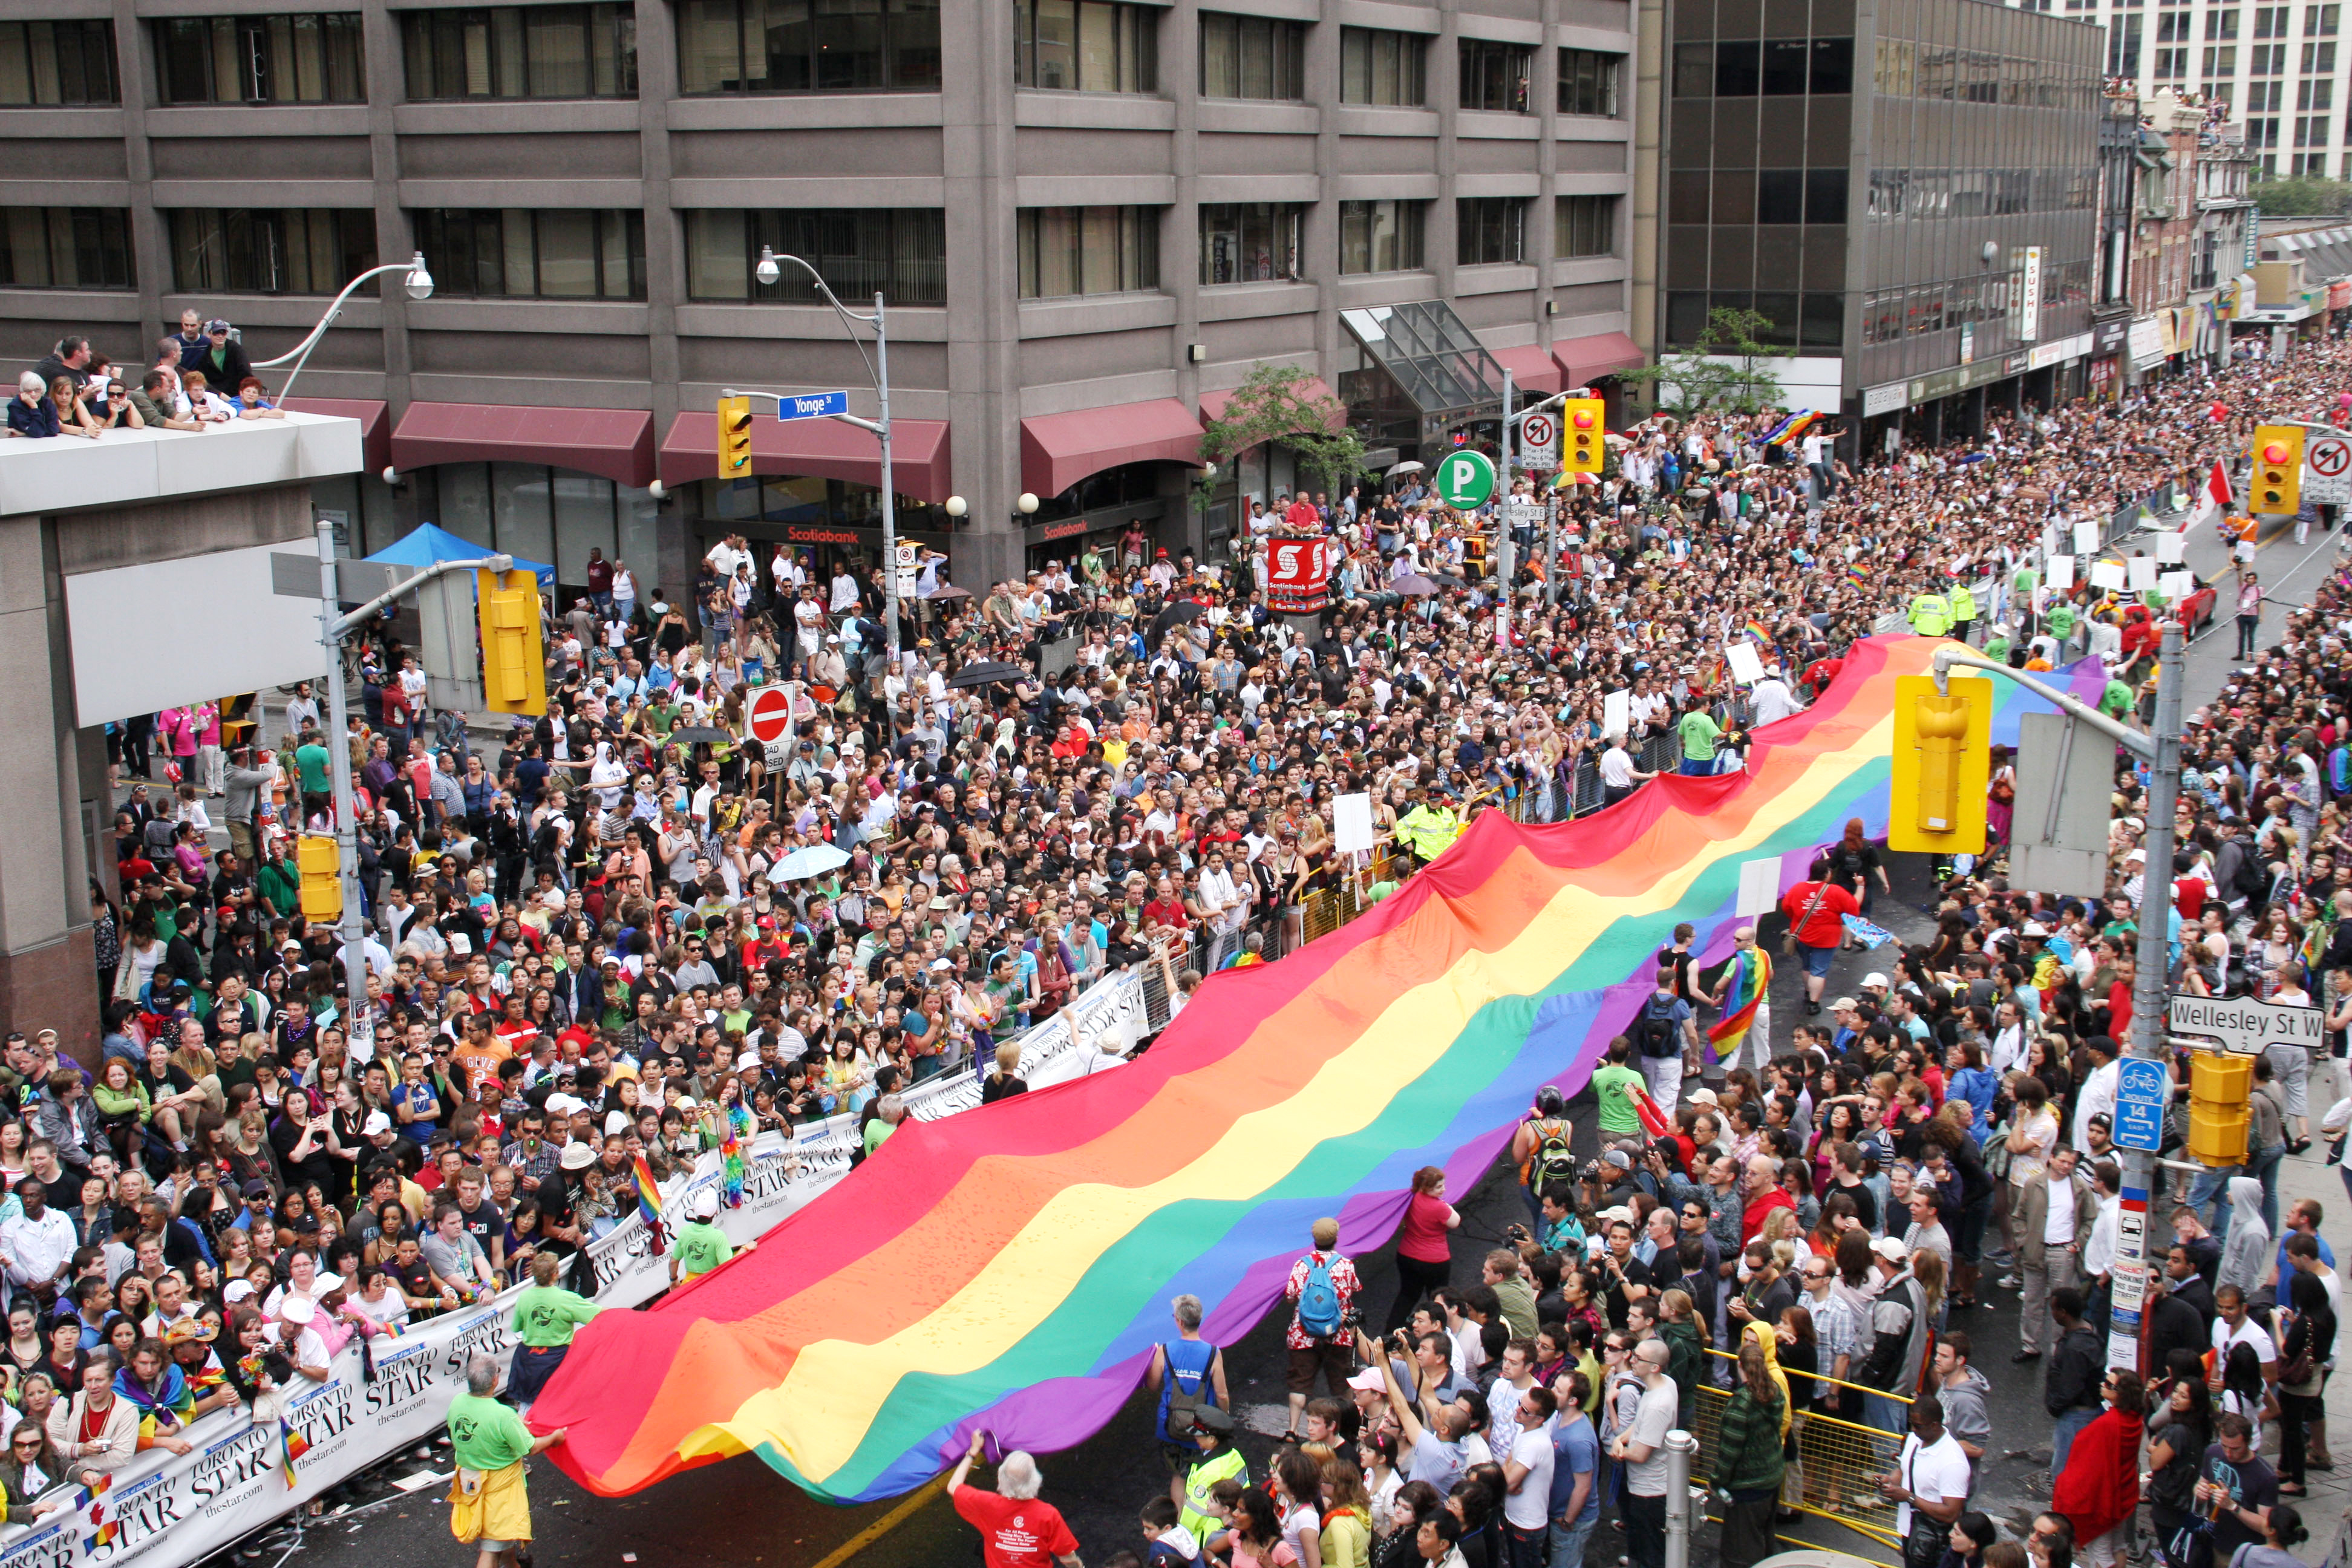 Image Description: Toronto Pride Parade with a long wide rainbow flag that stretches over 40 metres.